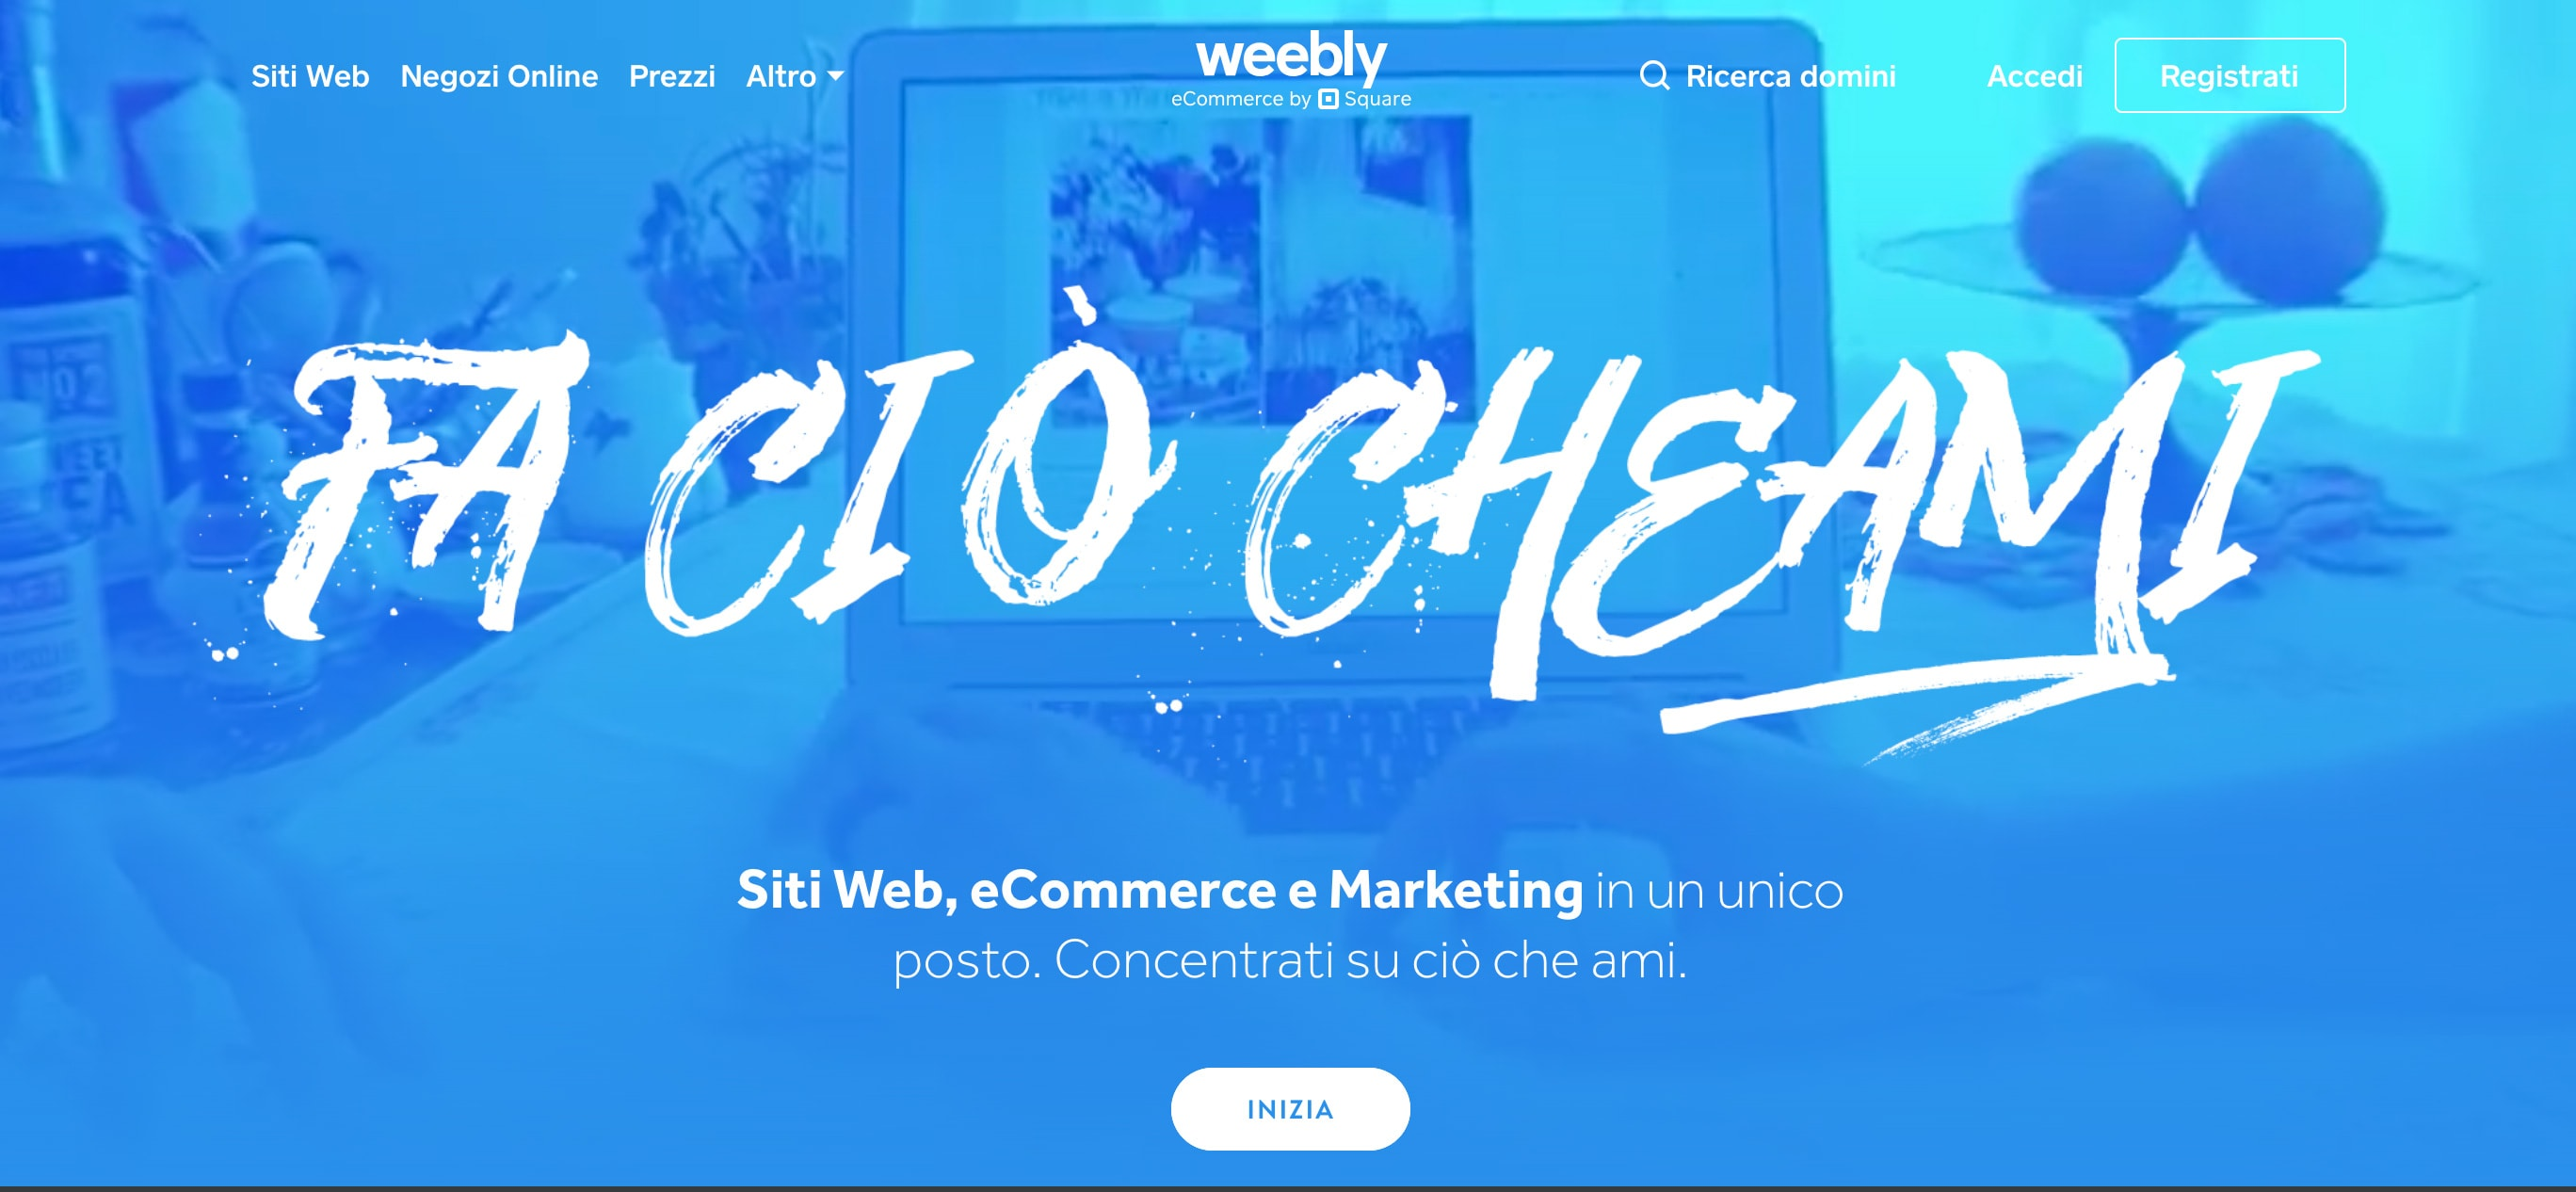 weebly home